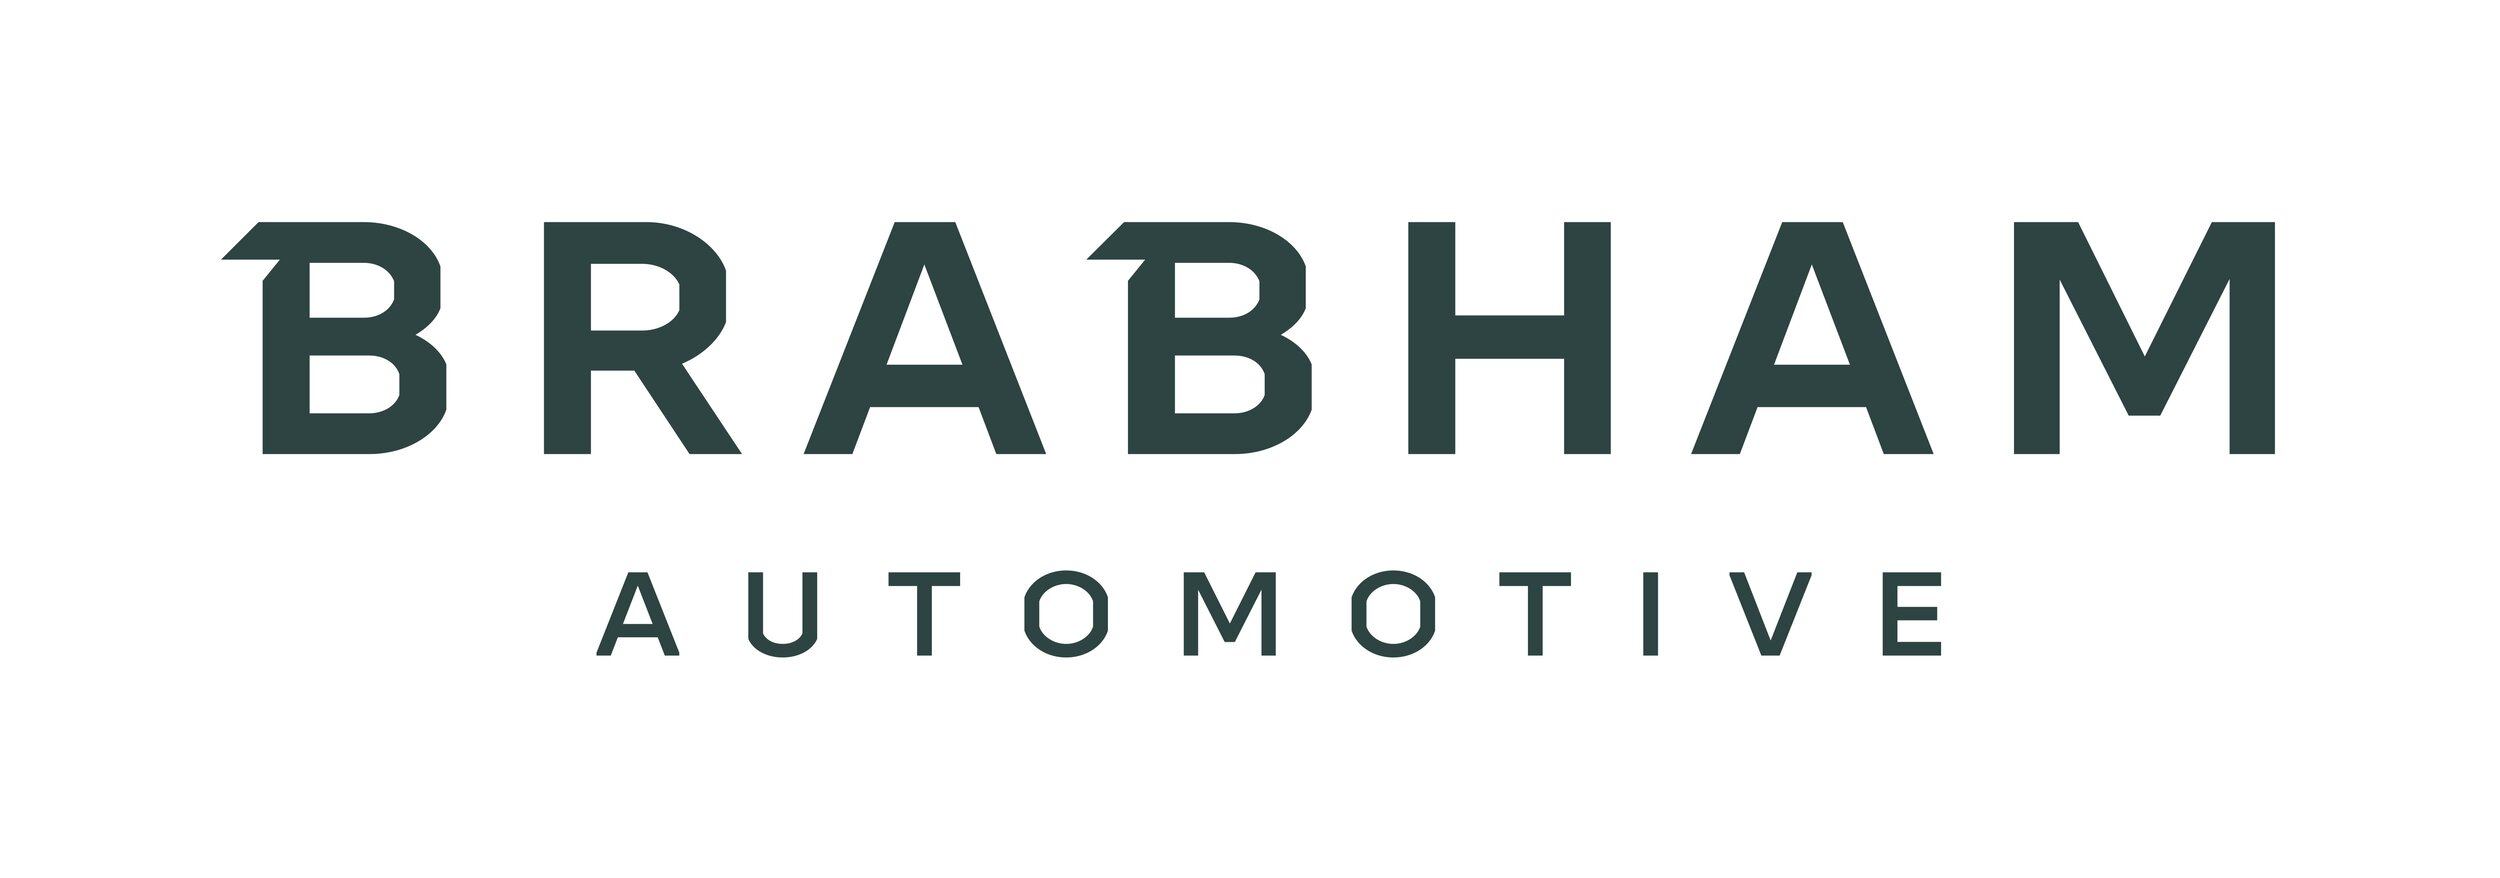 BrabhamAutomotiveWordmark_green.jpg